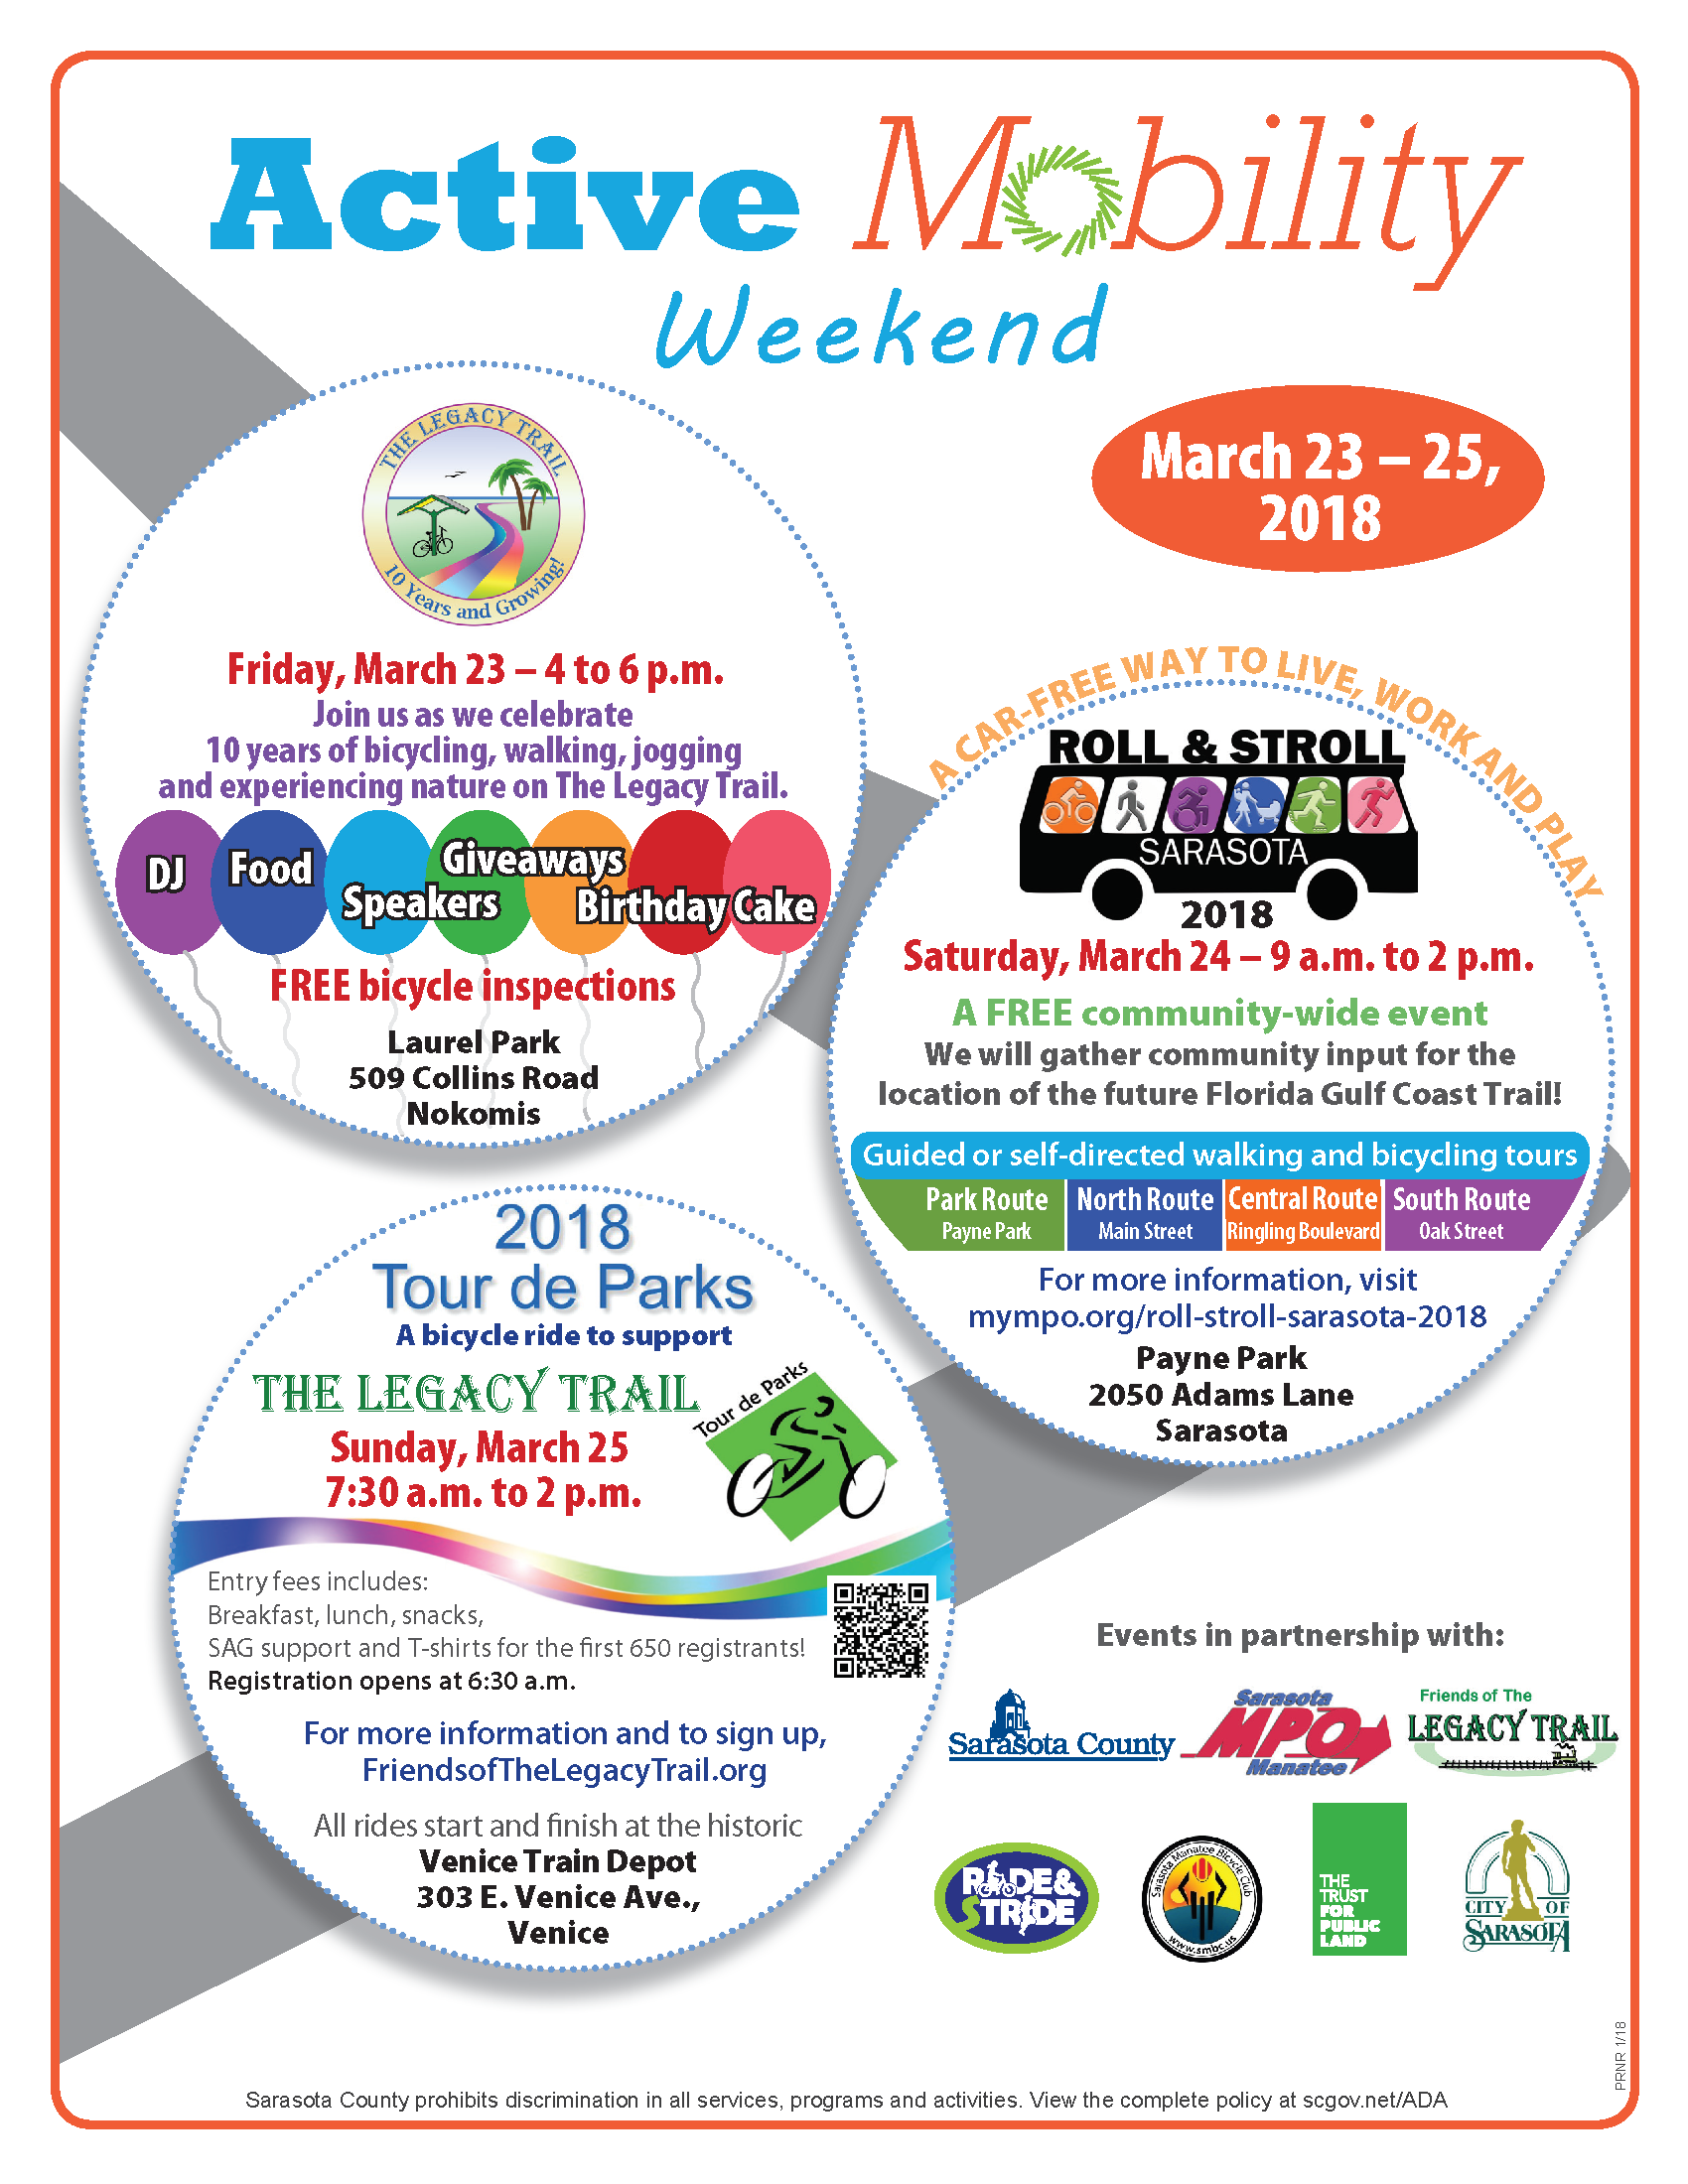 ActiveMobilityWeekend Flyer PRINT